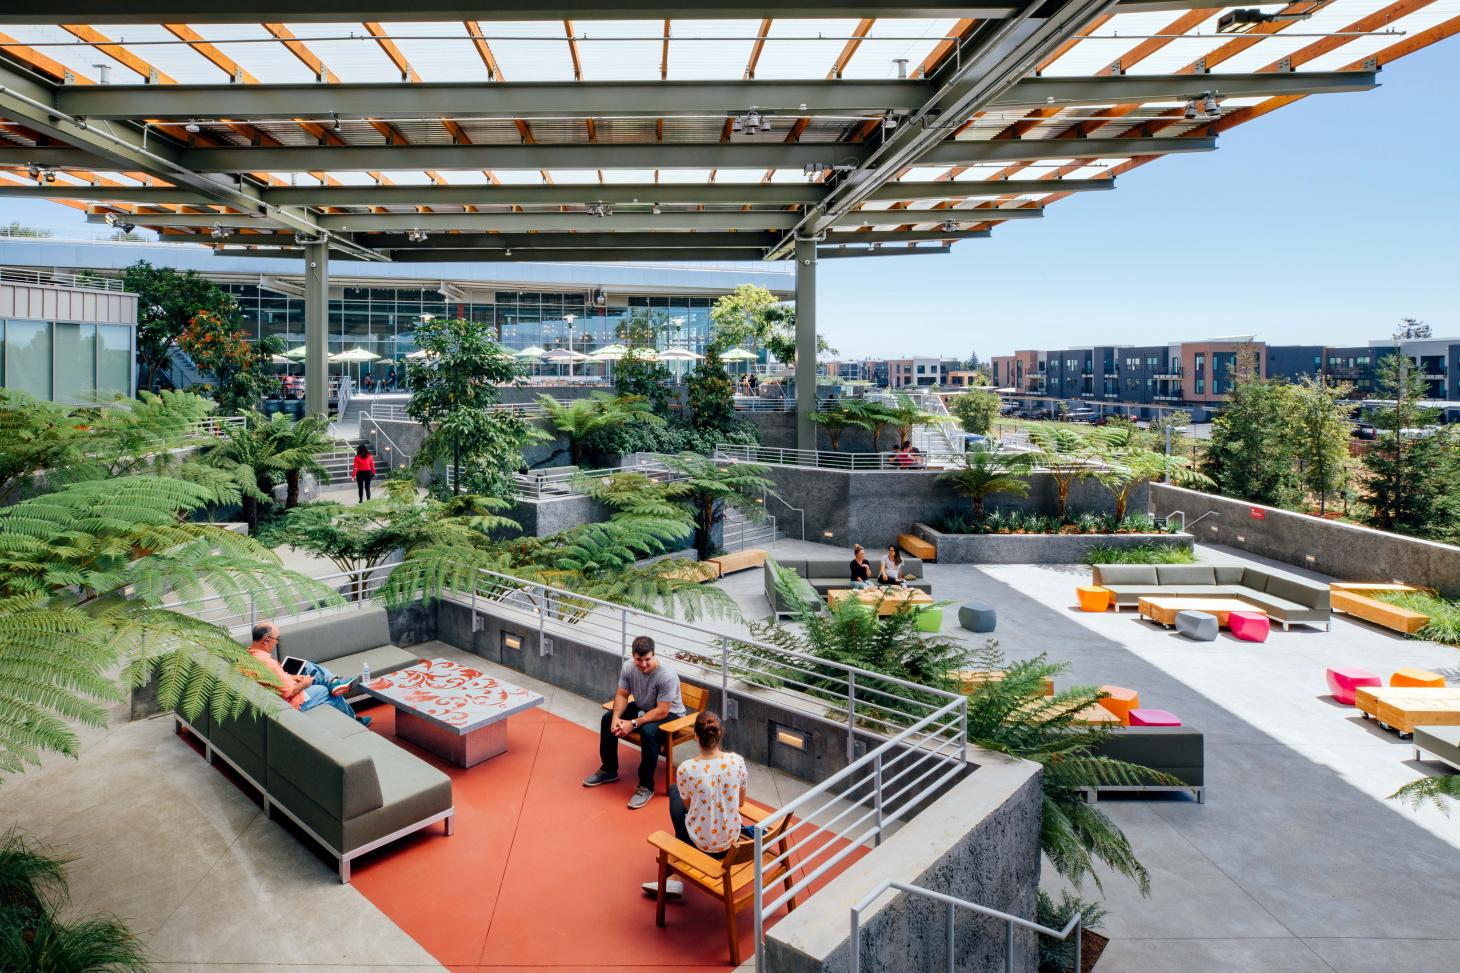 The Bowl Terrace designed by Frank Gehry at Facebook HQ Menlo Park